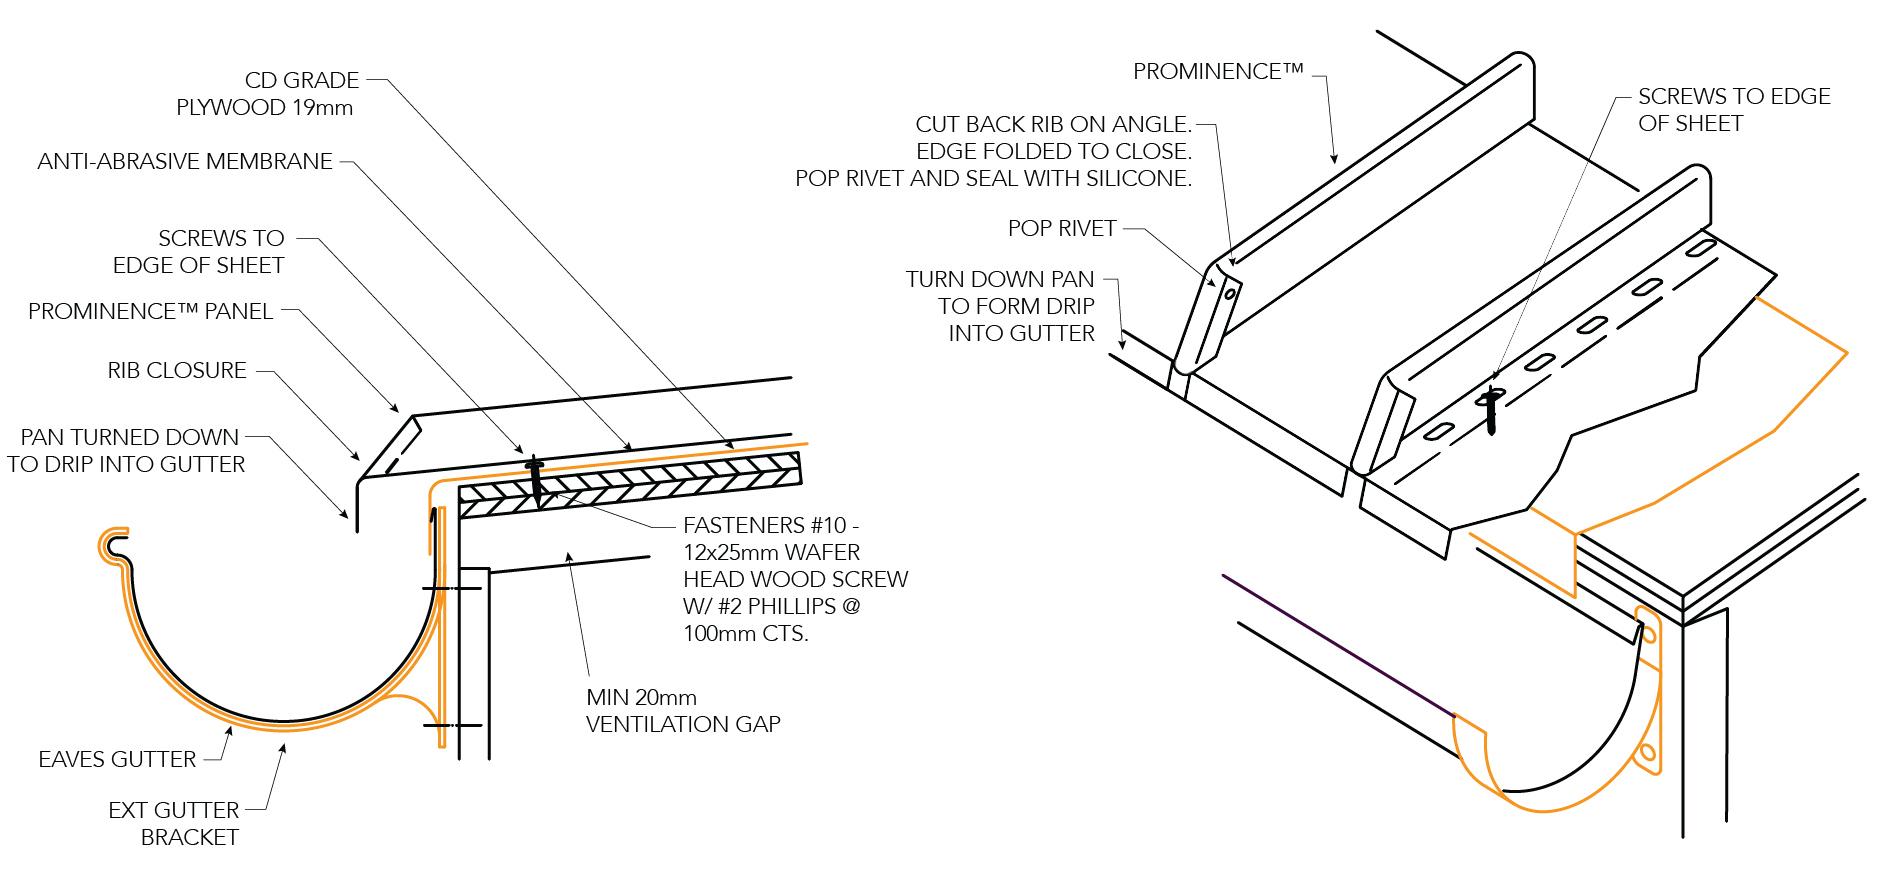 PROMINENCE™ NON-CYCLONIC Installation Details Low Eave/Gutter Figure PR ID NC 012